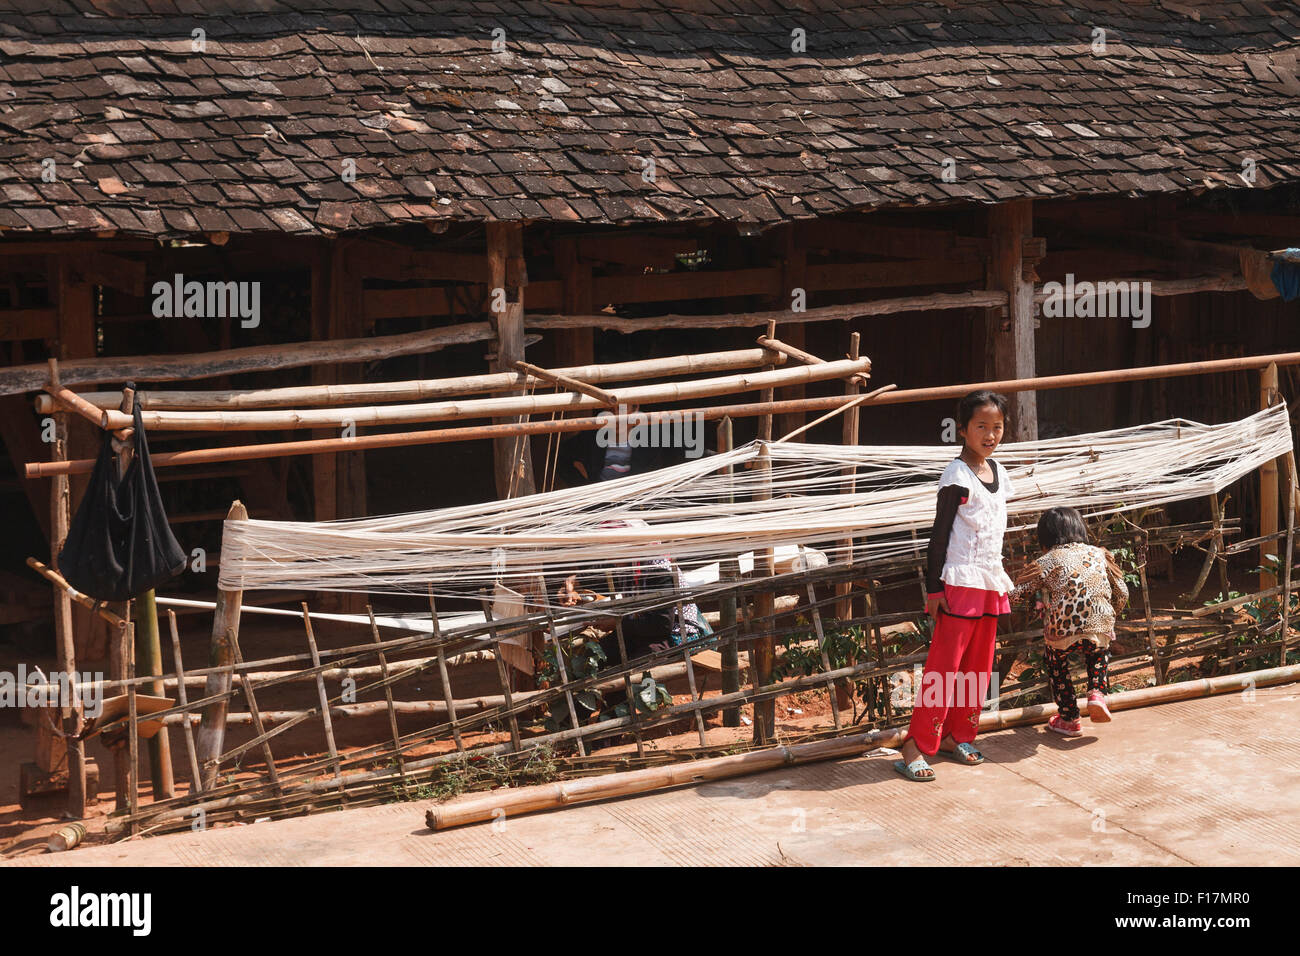 Children in a rural village in Xishuangbanna, Yunnan, China in front of a traditional hut where weaving and spinning - Stock Image